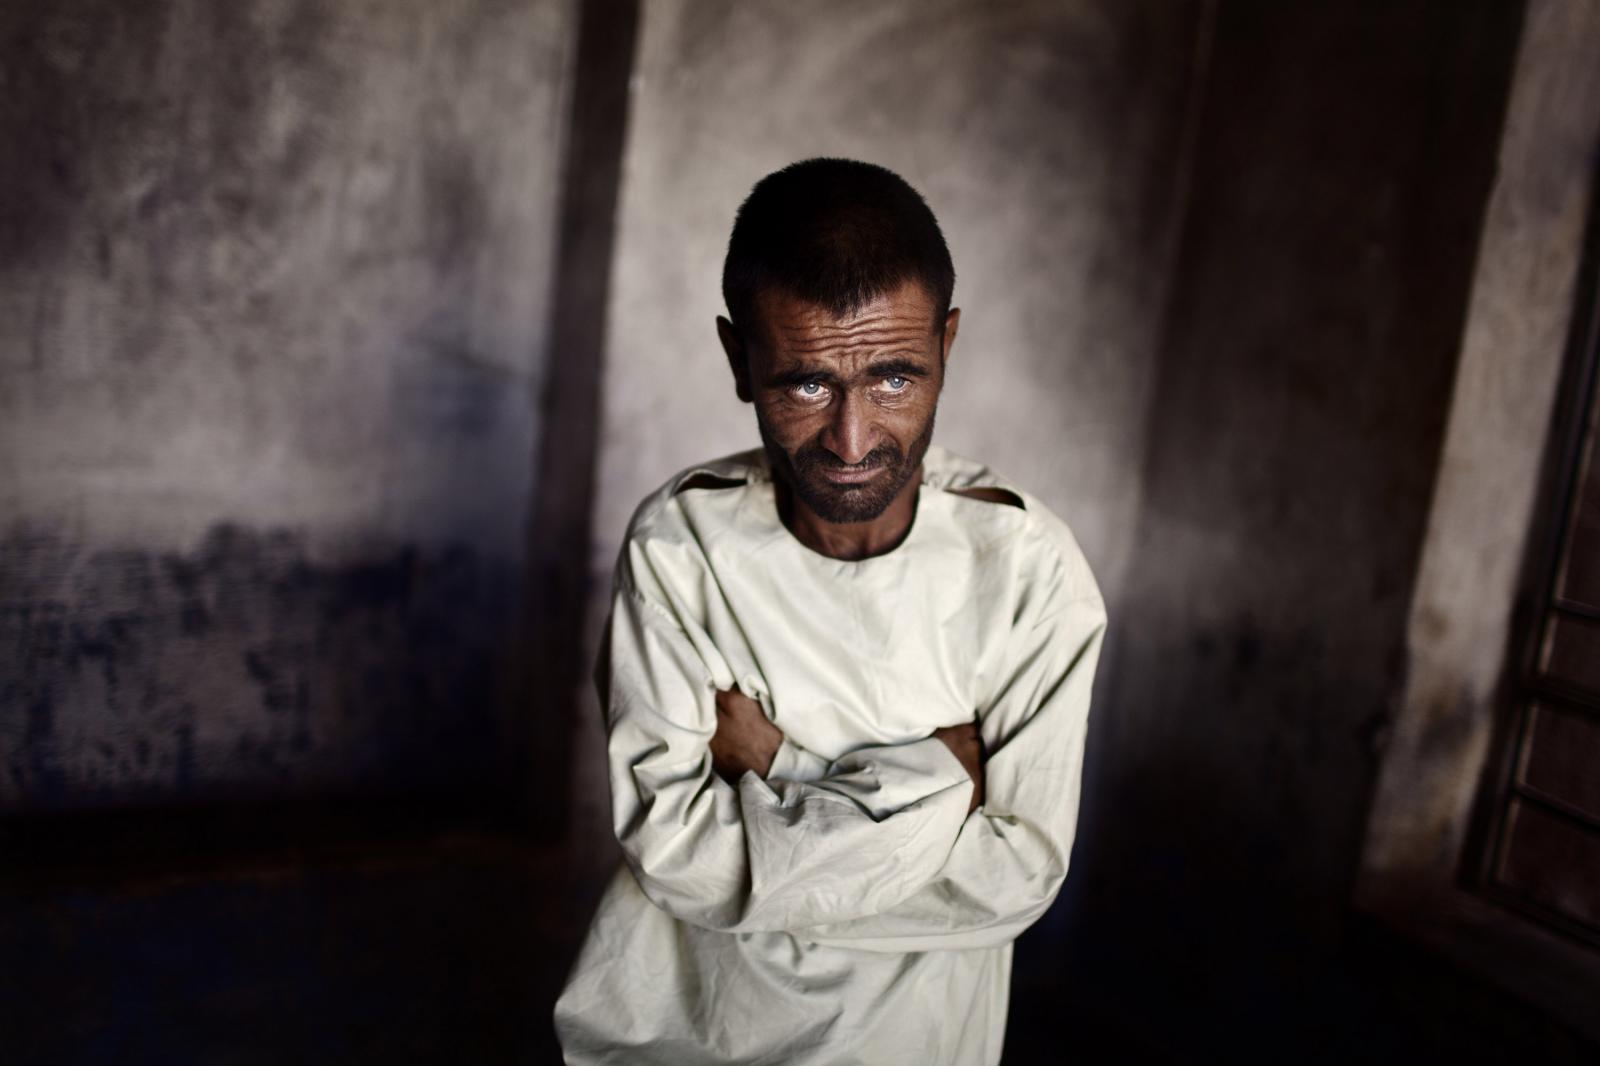 A mental patient lost in his thoughts in Herat, Afghanistan. July 26th, 2011. Diego Ibarra Sánchez / MeMo Population of Afghanistan has been exposed to sociopolitical instability, economic uncertainty, violence, and conflict for at least the past three decades